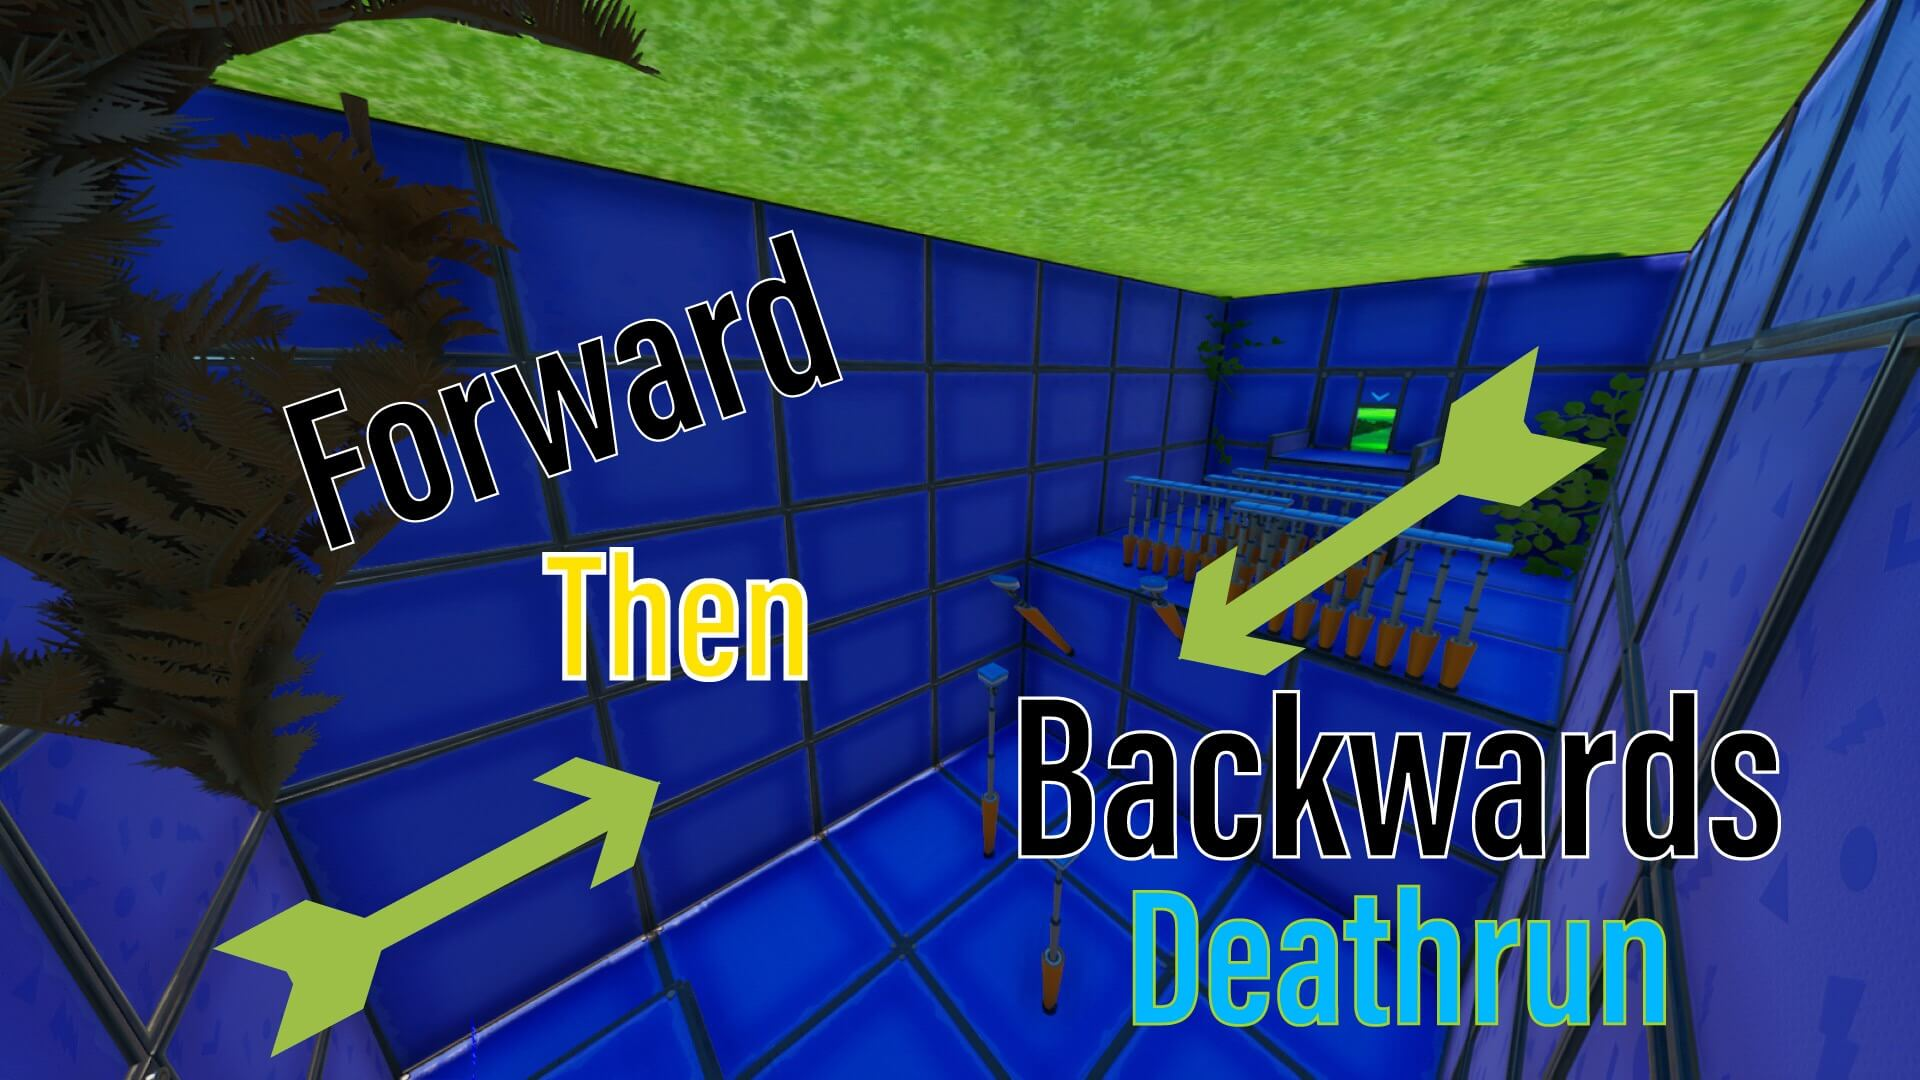 FORWARDS THEN BACKWARDS DEATHRUN